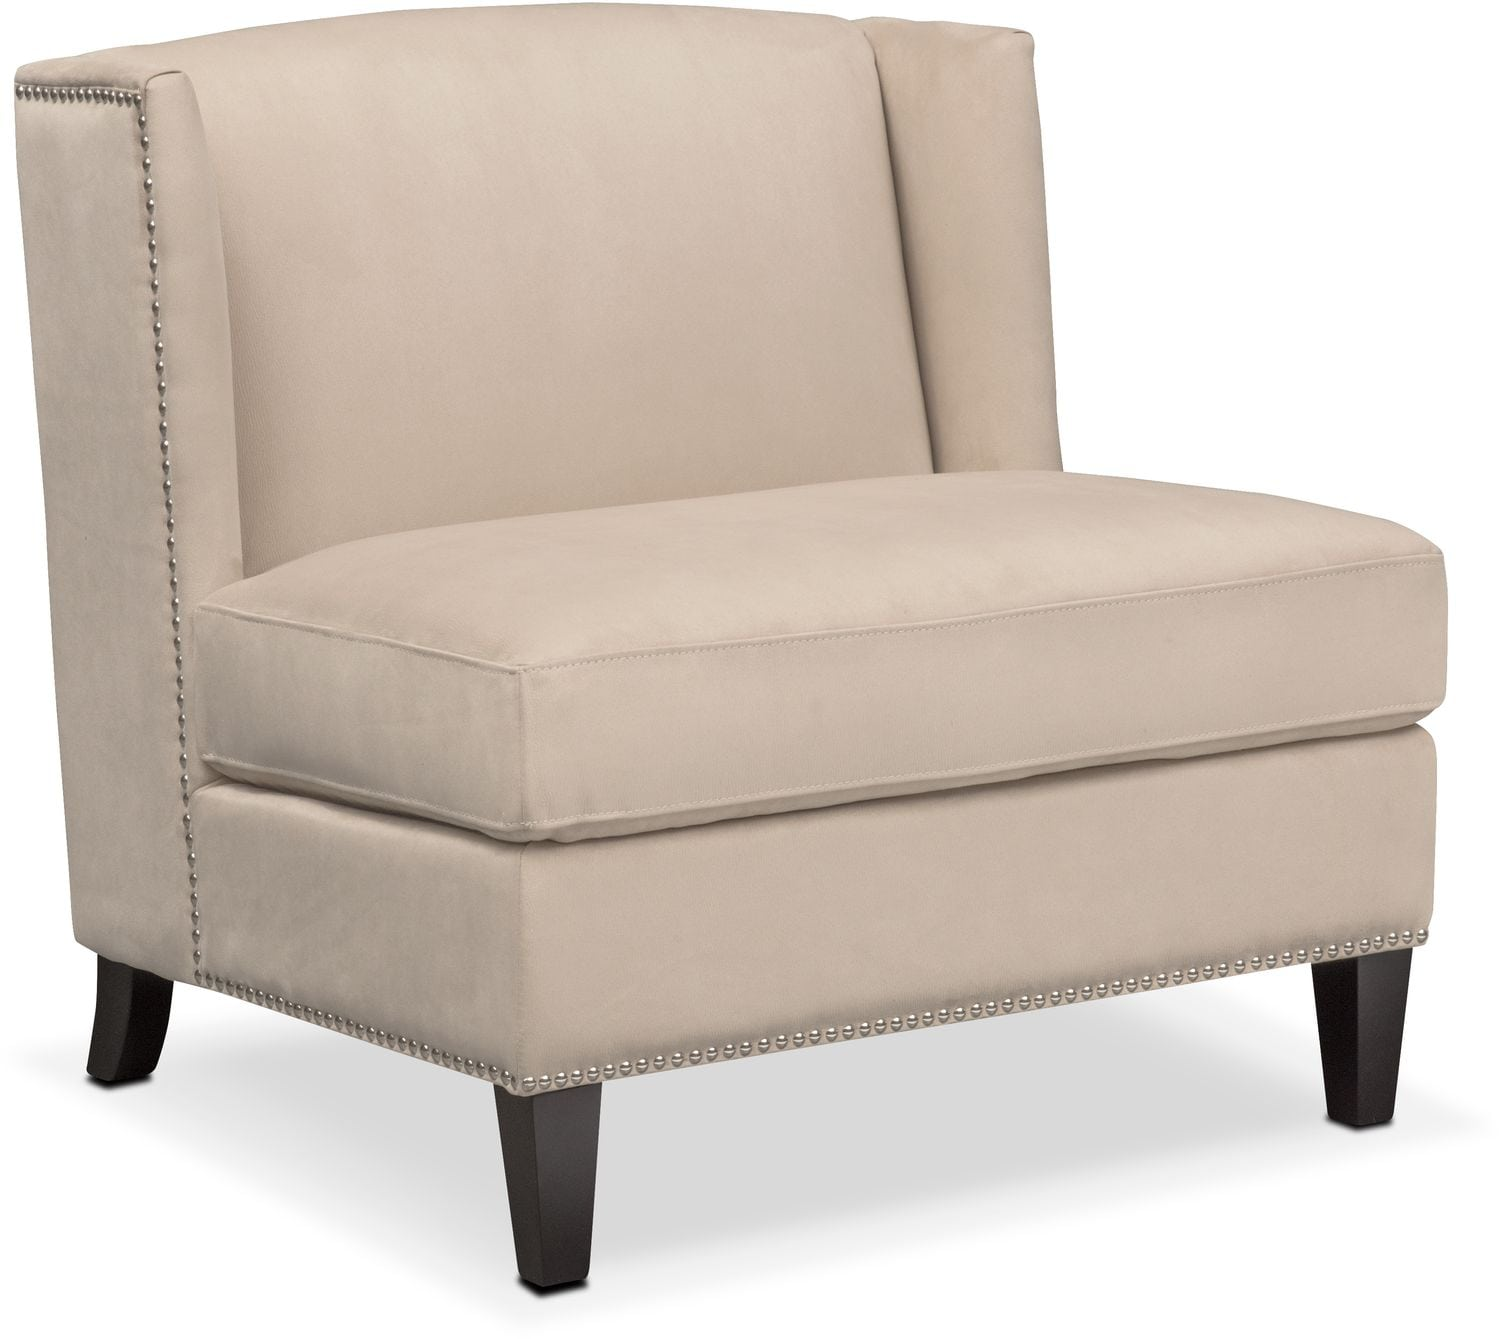 Accent Chair For Taupe Couch: Torrance Accent Chair - Taupe